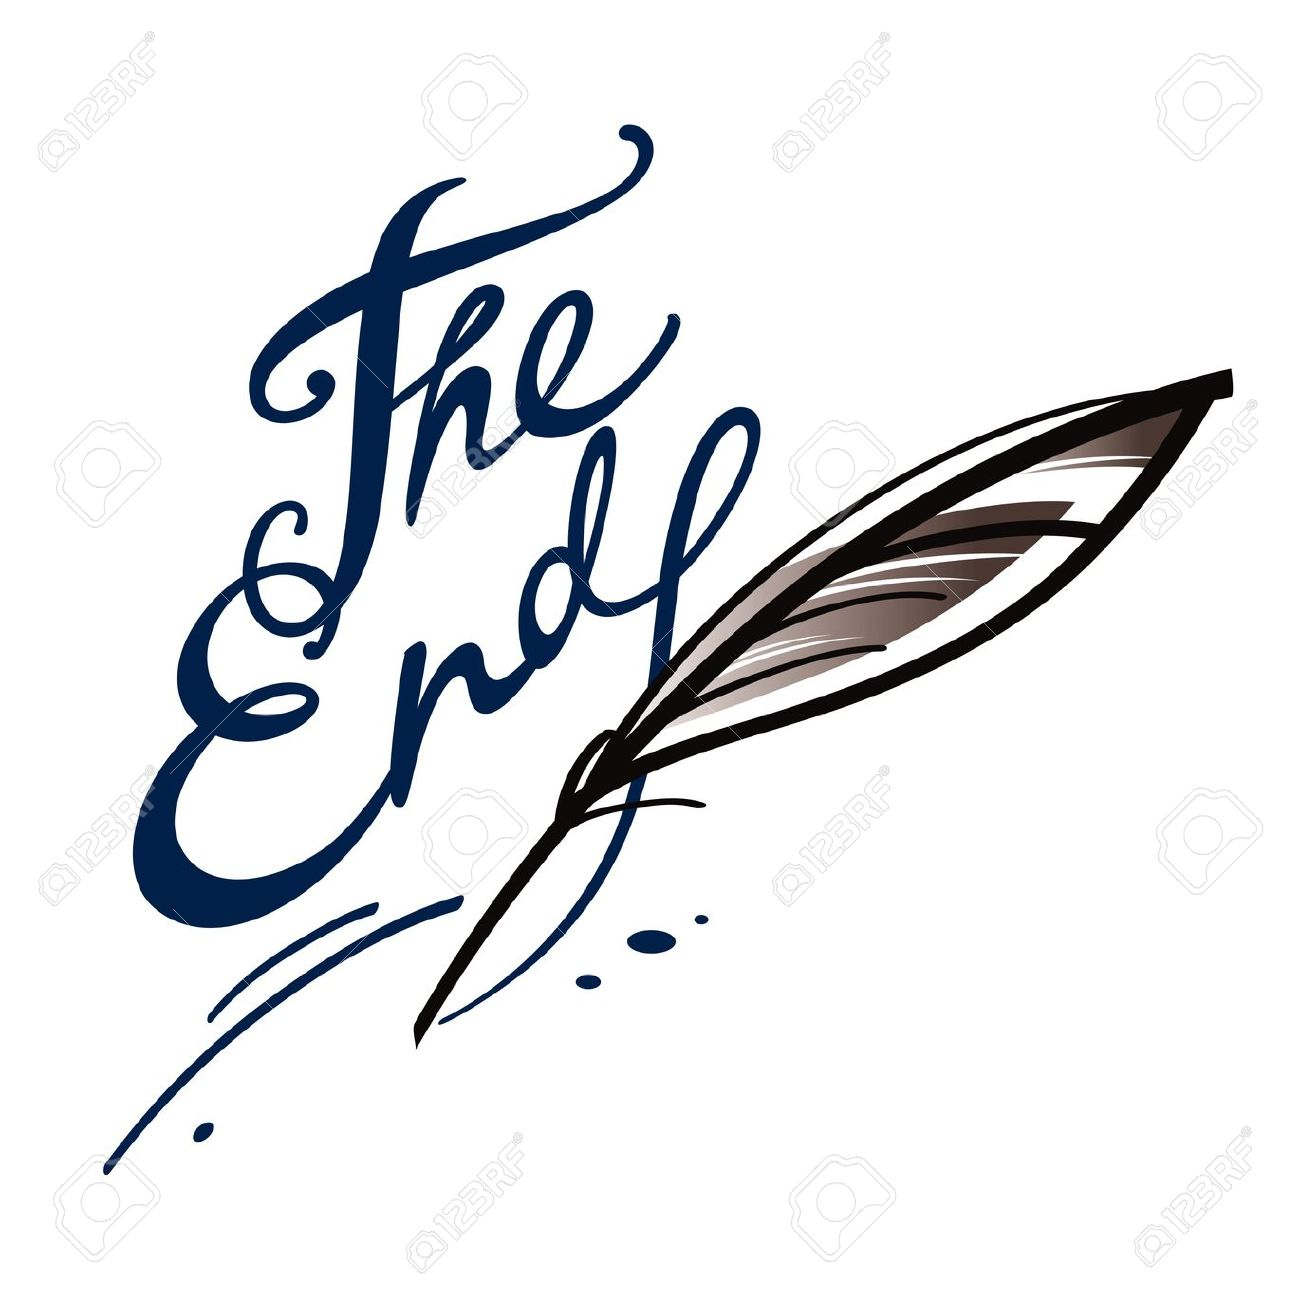 Book the end. Finish final clipart panda